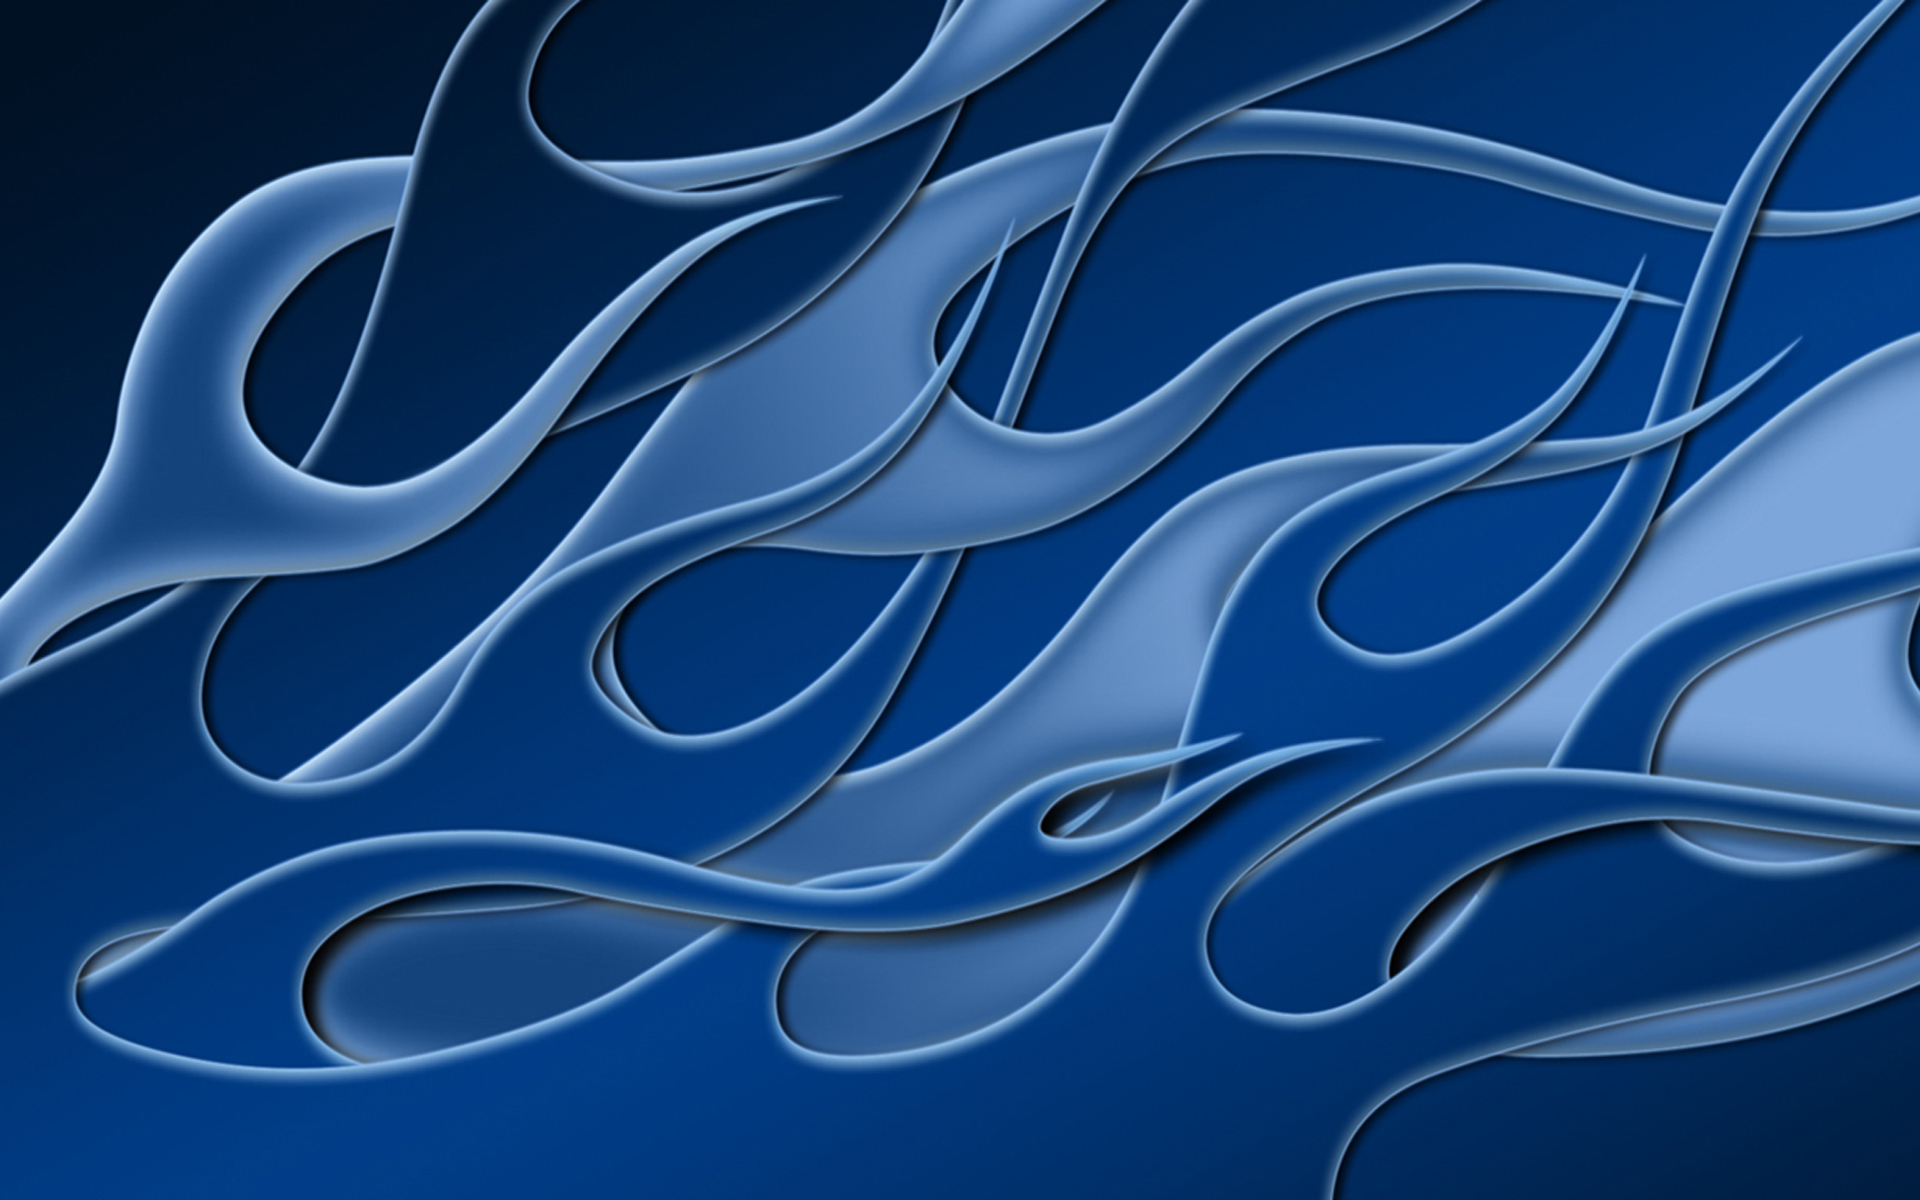 Flames - Blue Weave Widescreen by jbensch